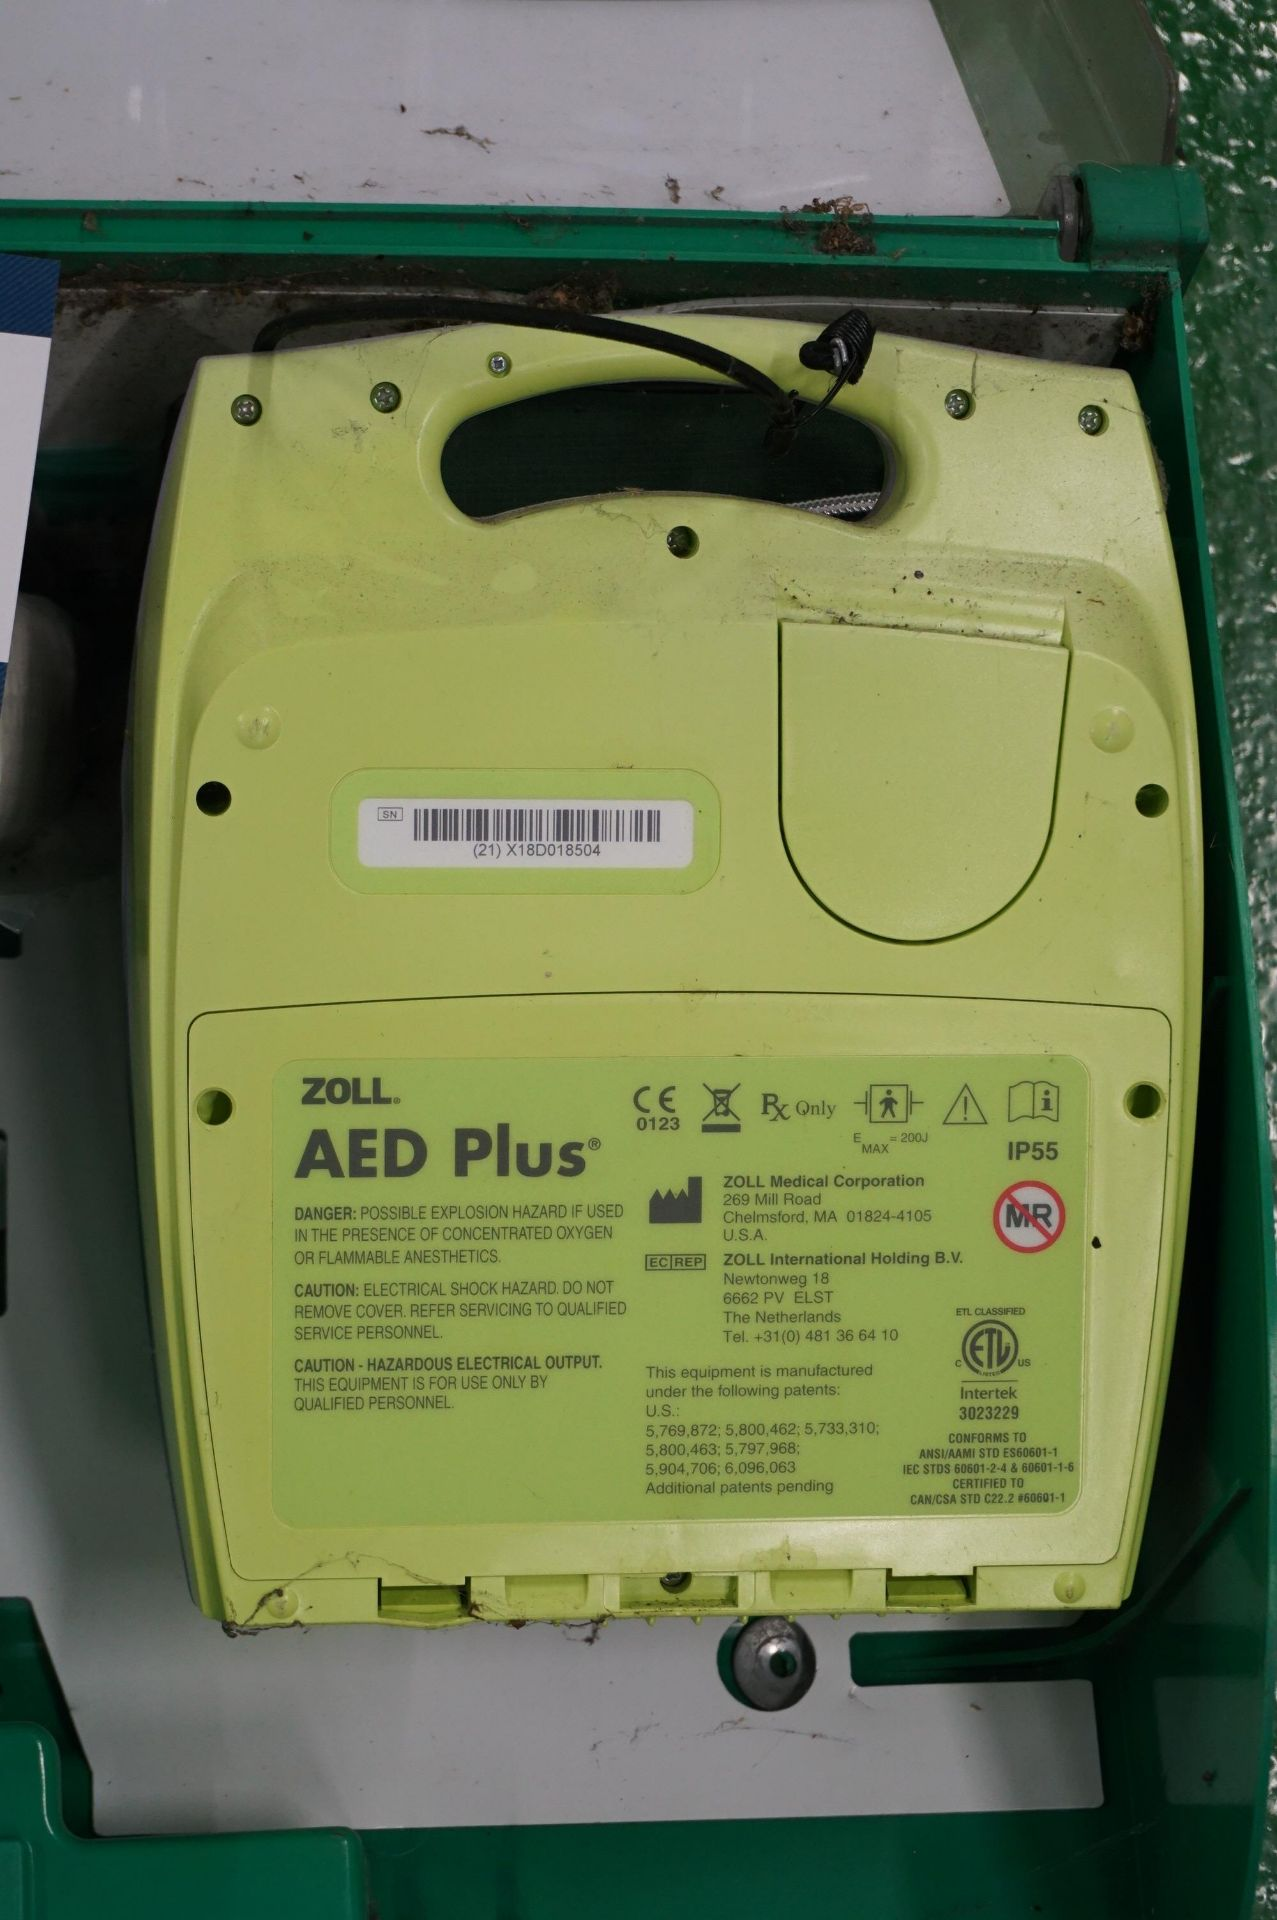 1 x Zoll AEDPLUS Avia 100:X2A100-XX100 battery operated defibrillator and 1 x Zoll AEDPLUS X18D01850 - Image 3 of 3